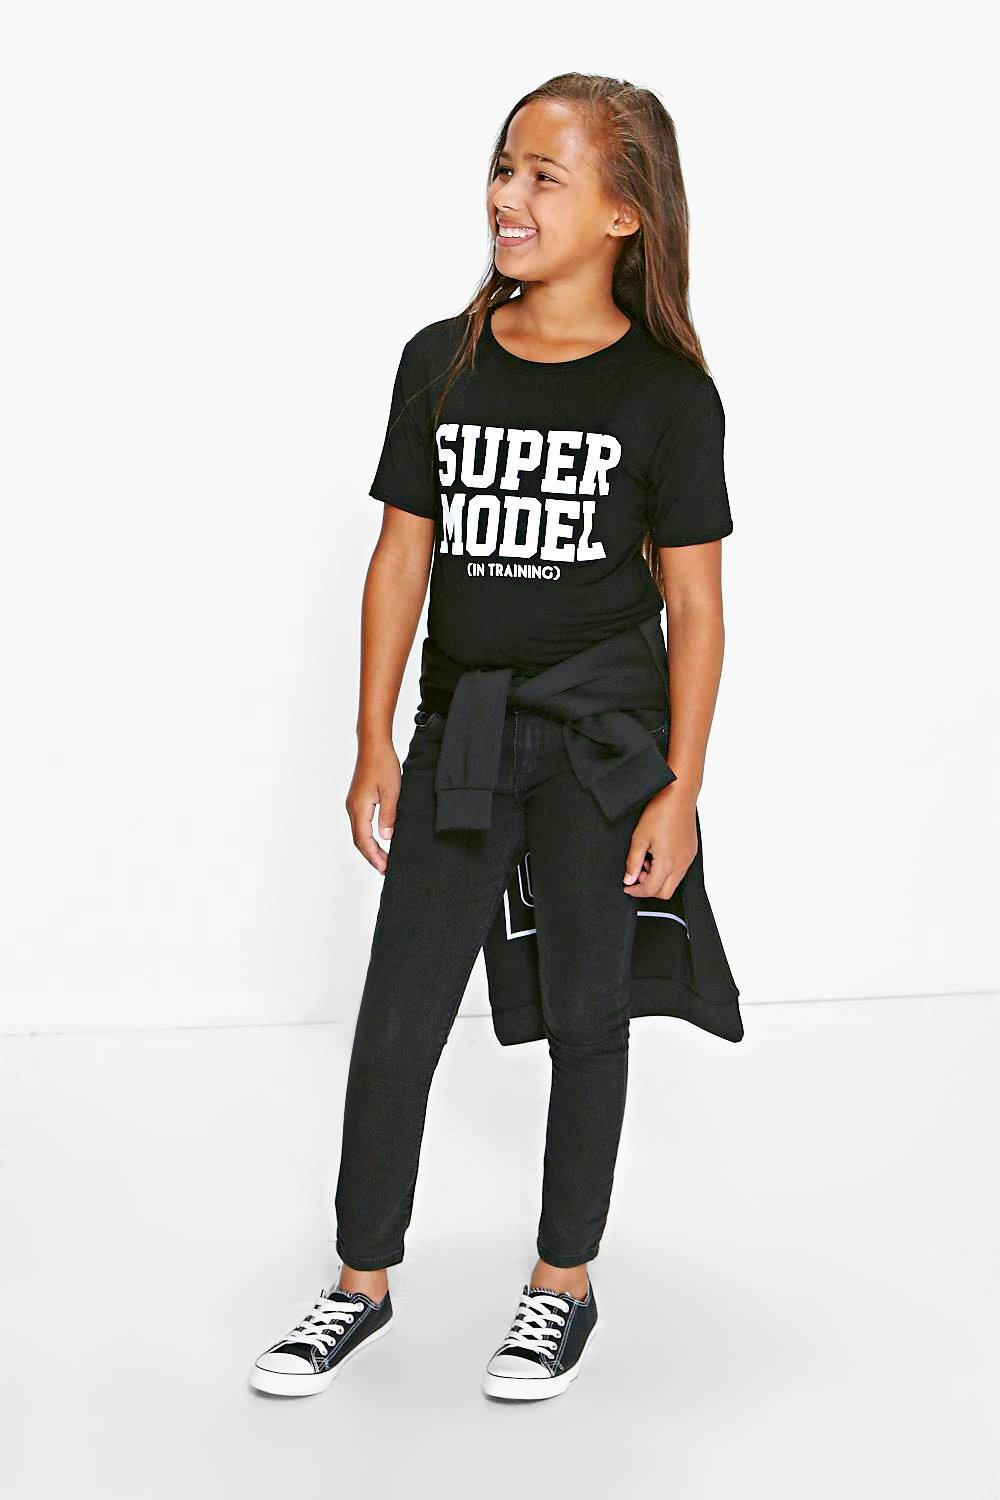 Girls Supermodel in Training Tee